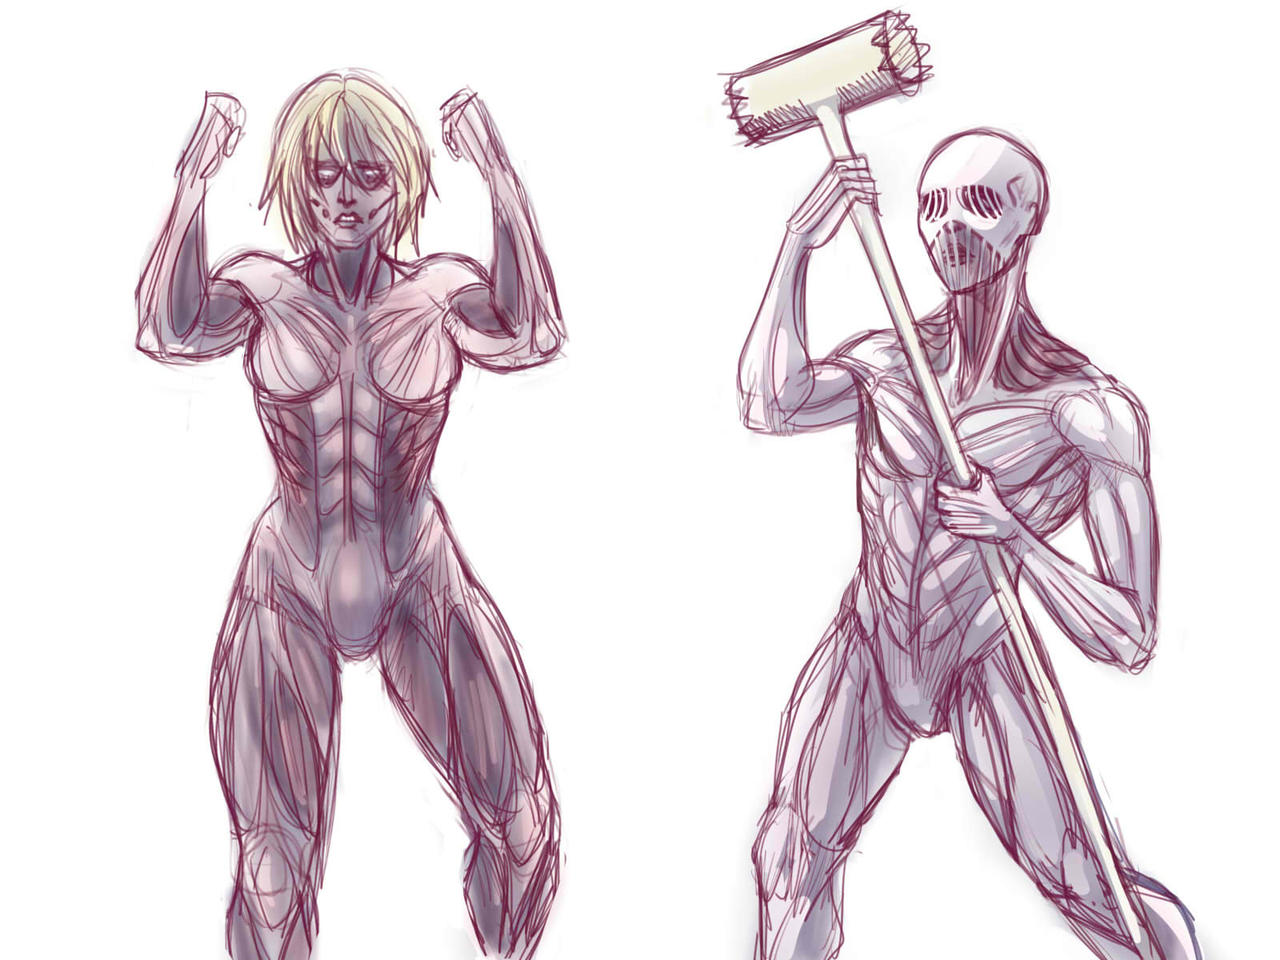 Female Warhammer Titan By Noupie On Deviantart How to draw warhammer titan step by step tutorial from attack on titan (shingeki no kyojin/ 進撃の巨人)in this video i will be teaching you how to draw war. female warhammer titan by noupie on